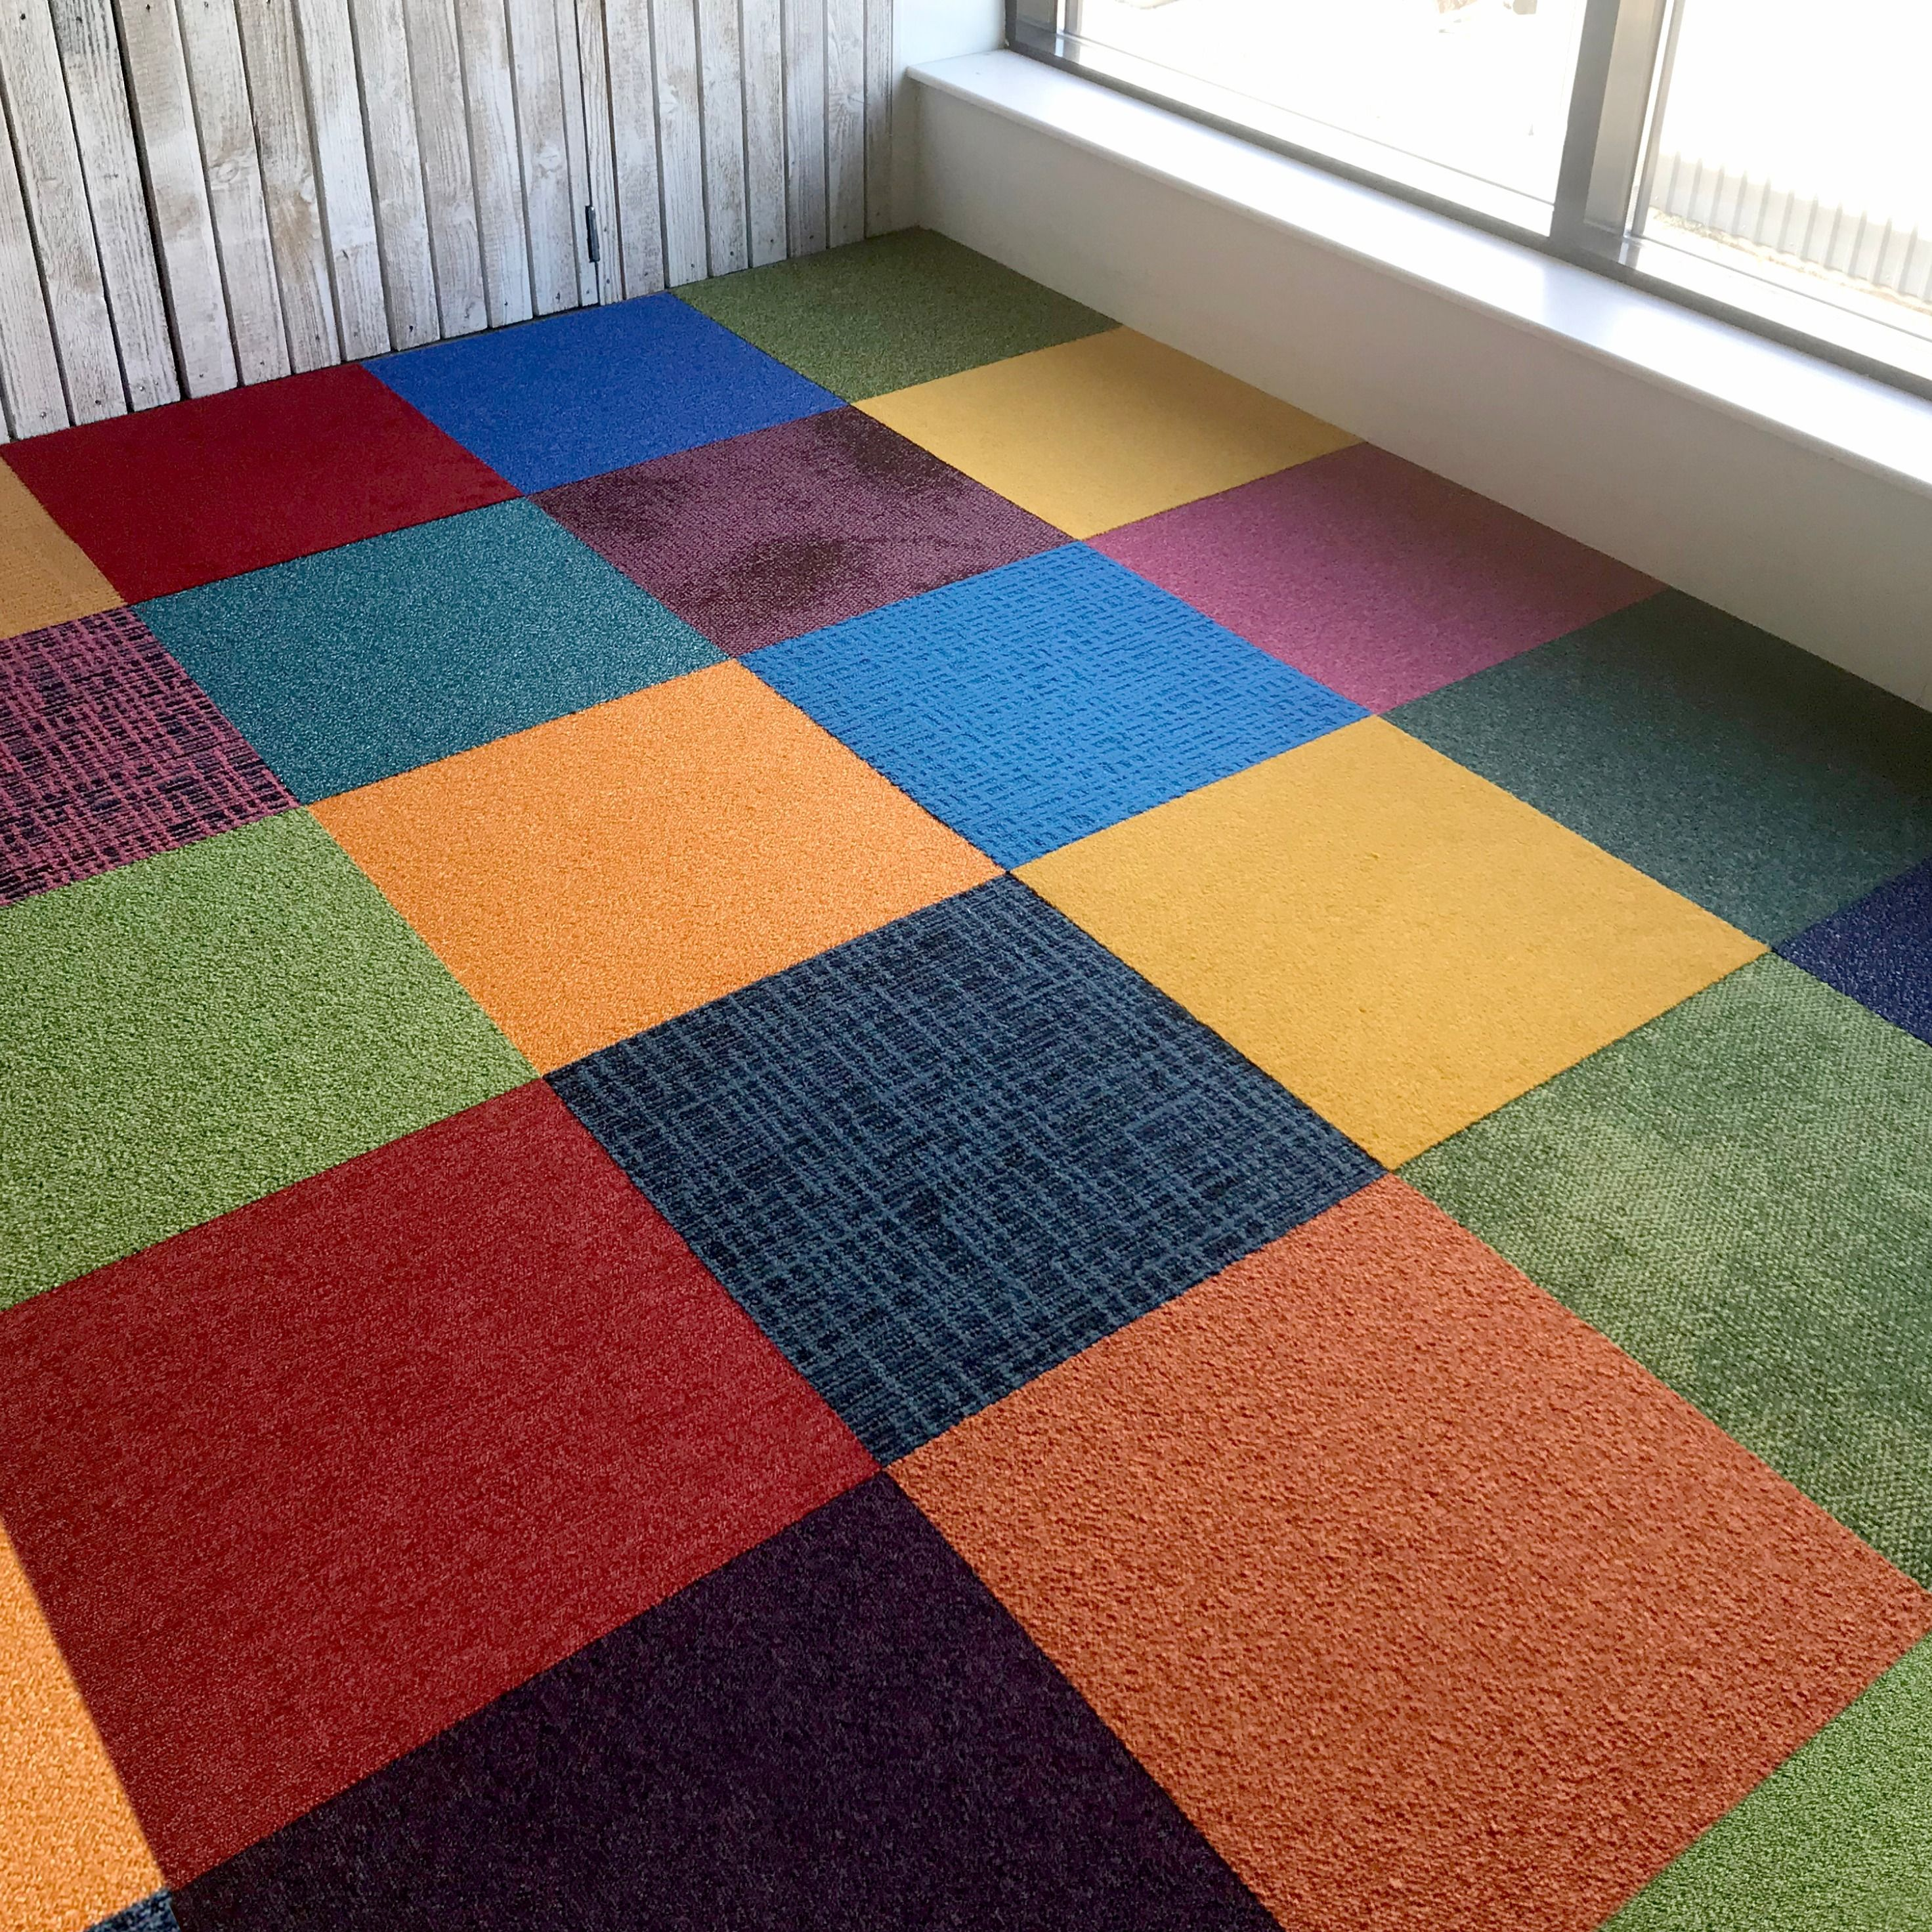 A mixture of Heuga and Interface carpet tiles in different